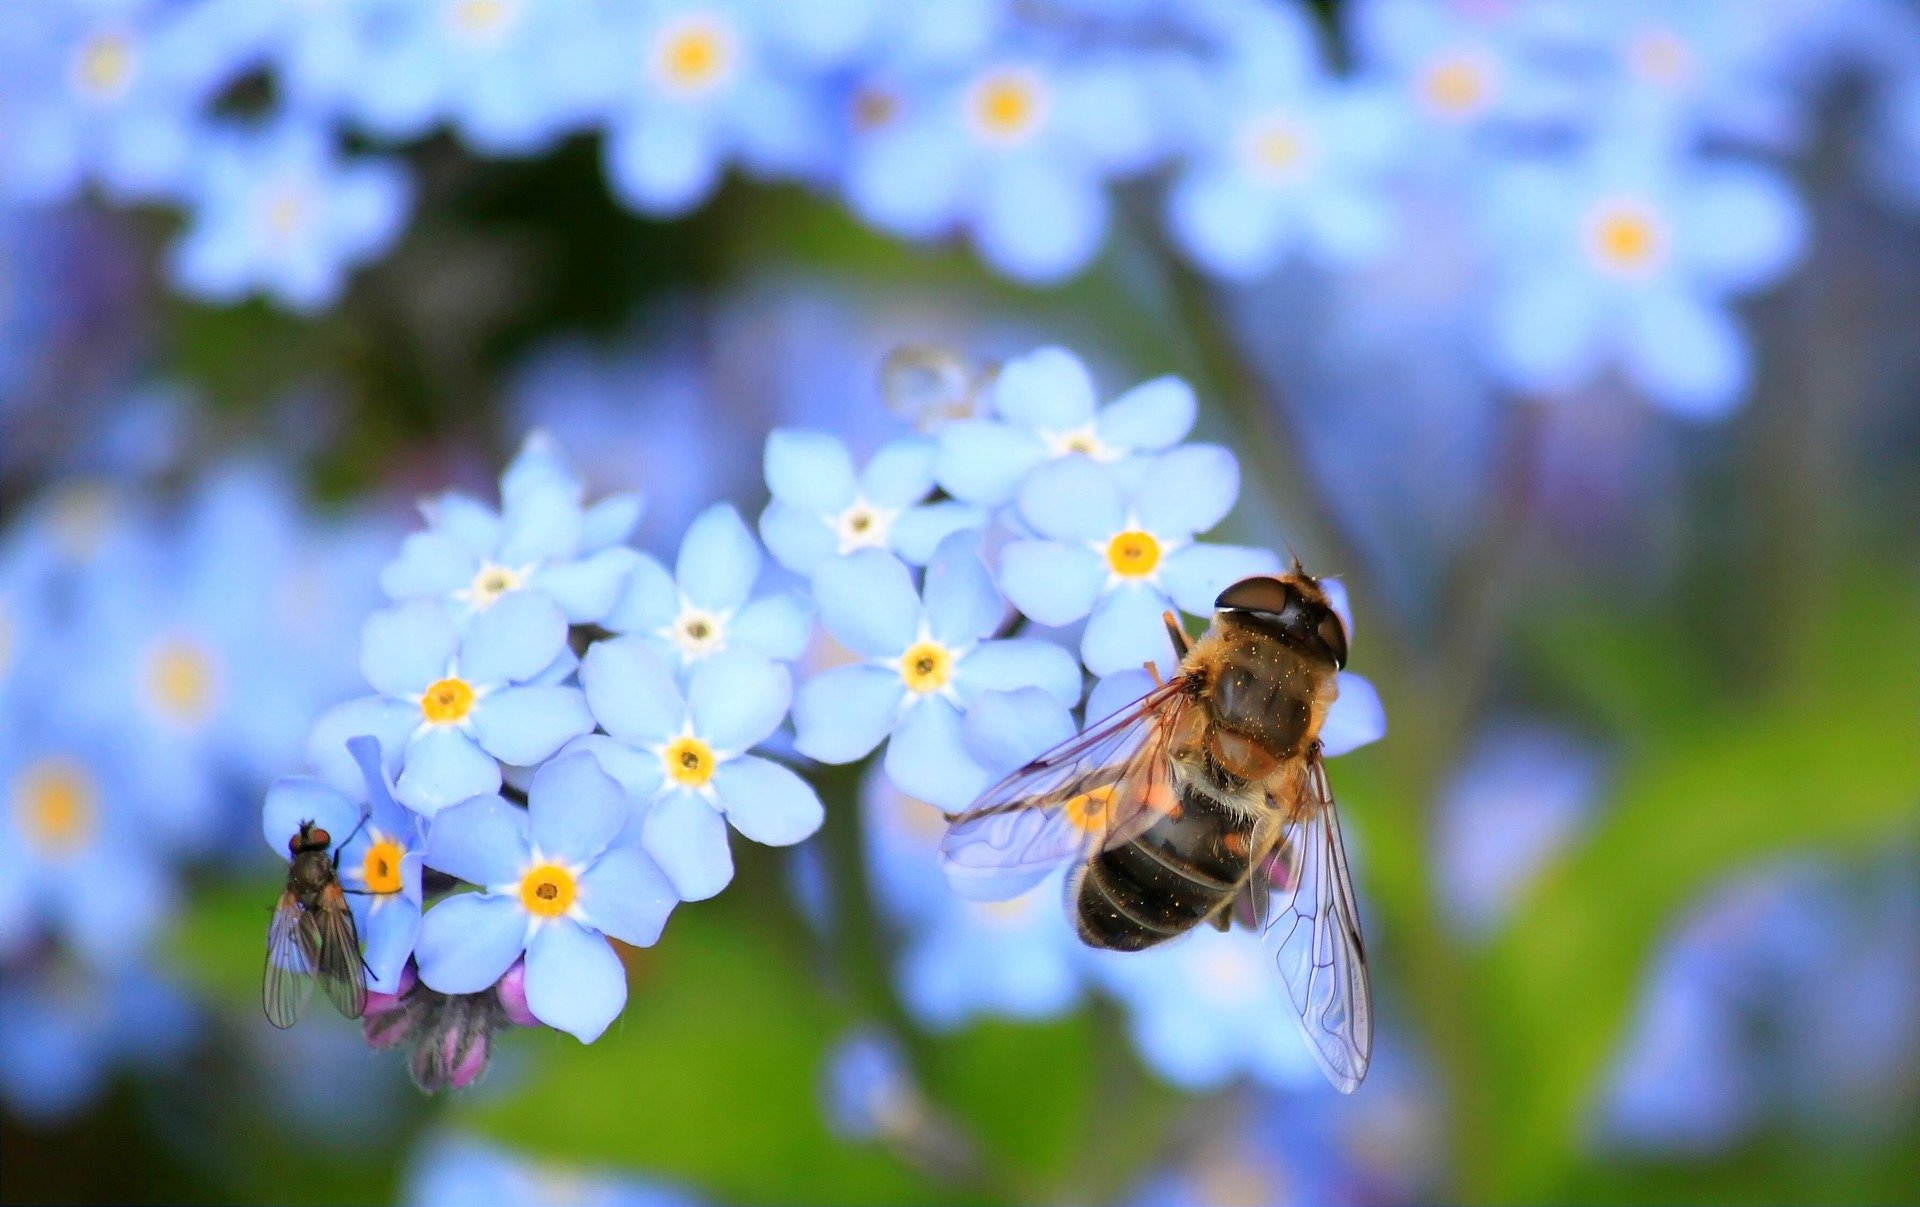 Hoverfly on forget-me-not. Image credit: cocoparisienne on Pixabay.